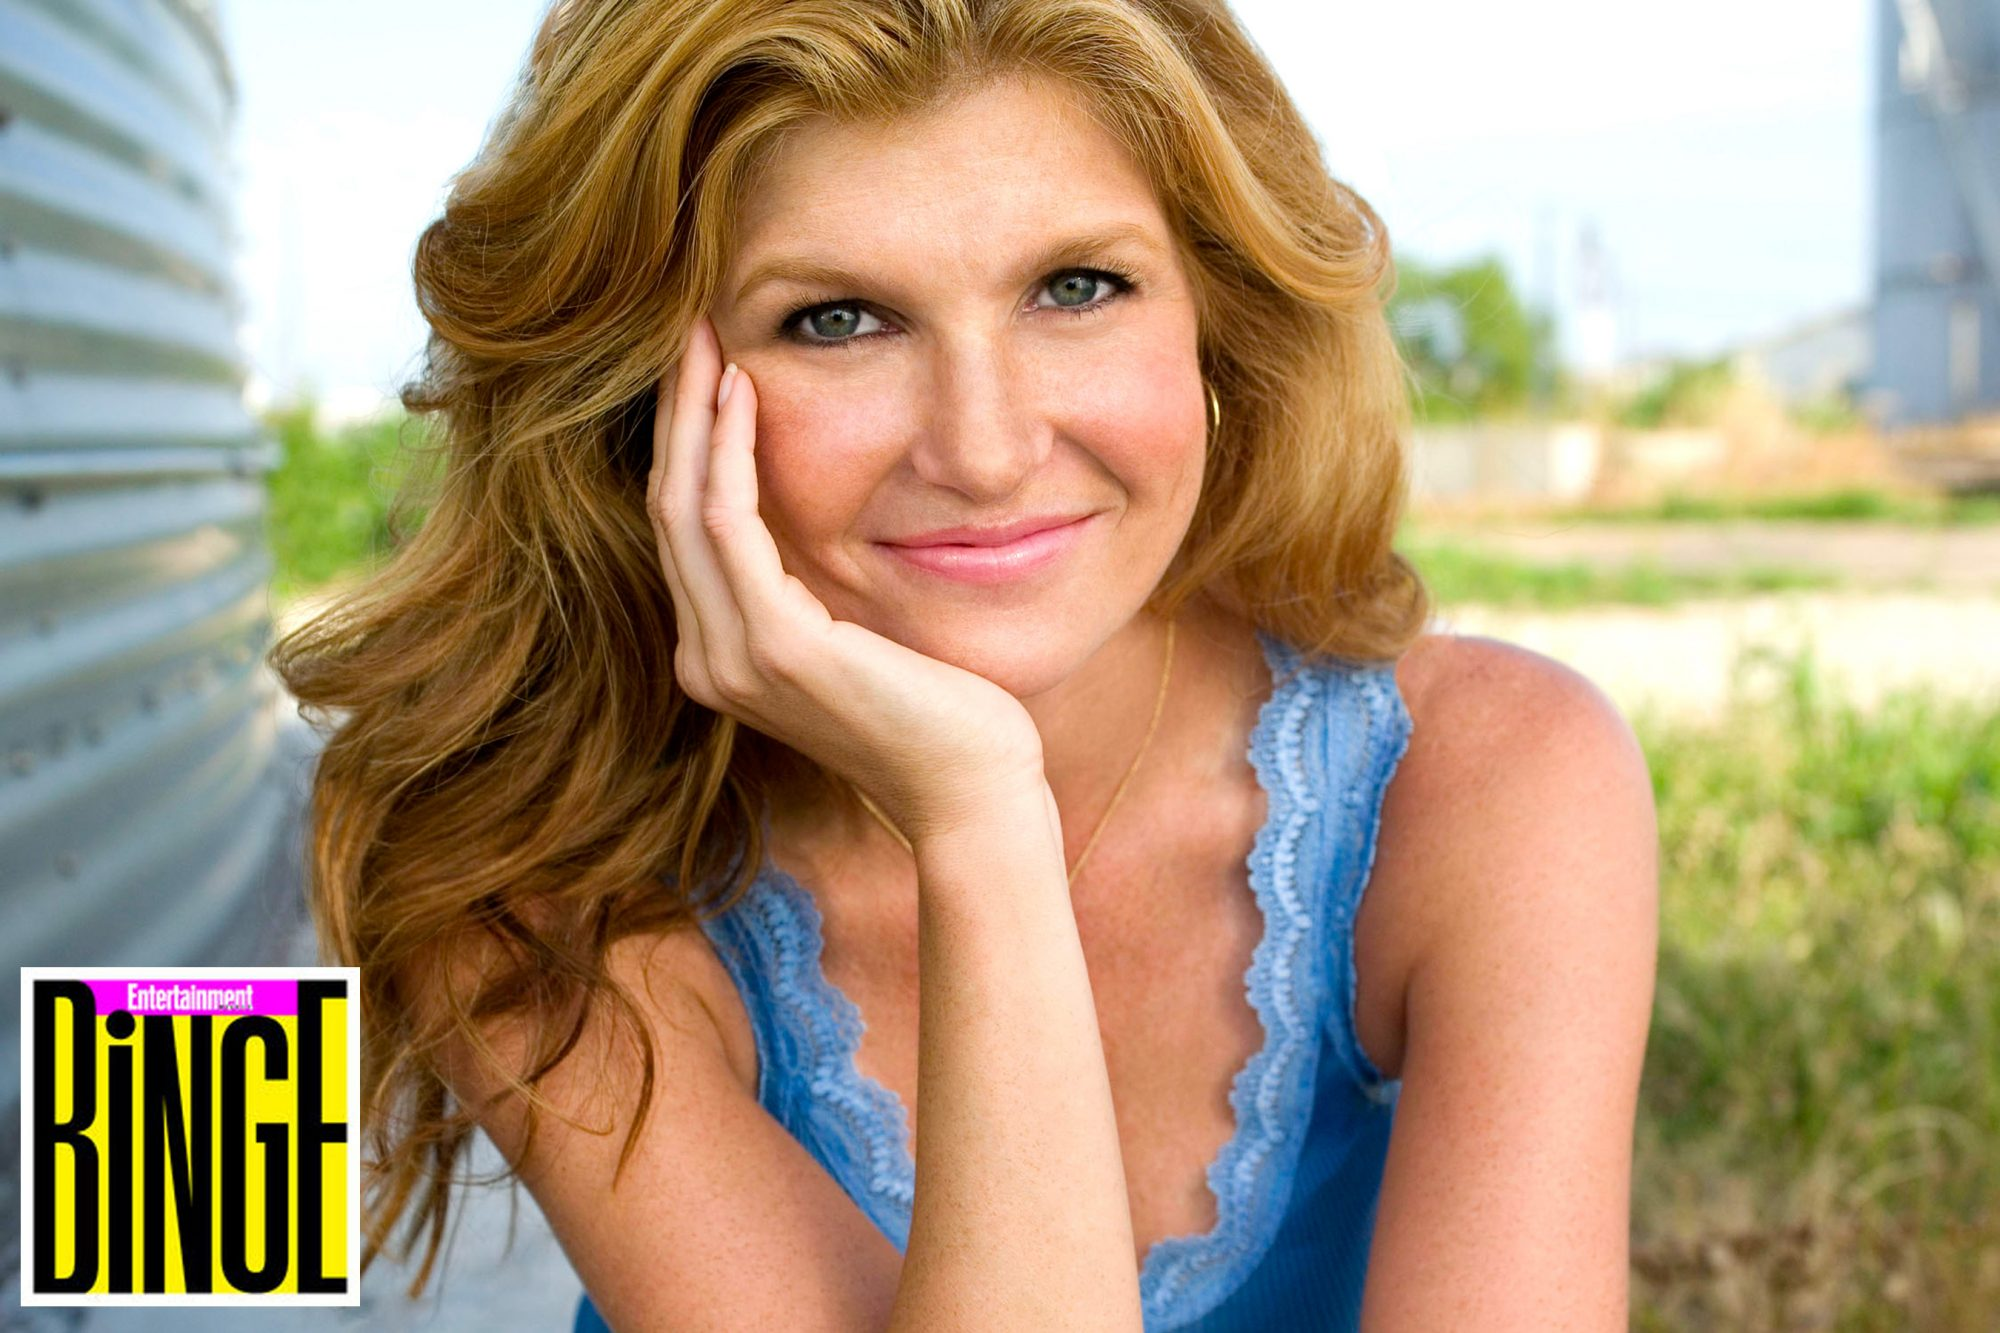 How To Get Connie Britton Hair With This 15 Minute Blow Dry